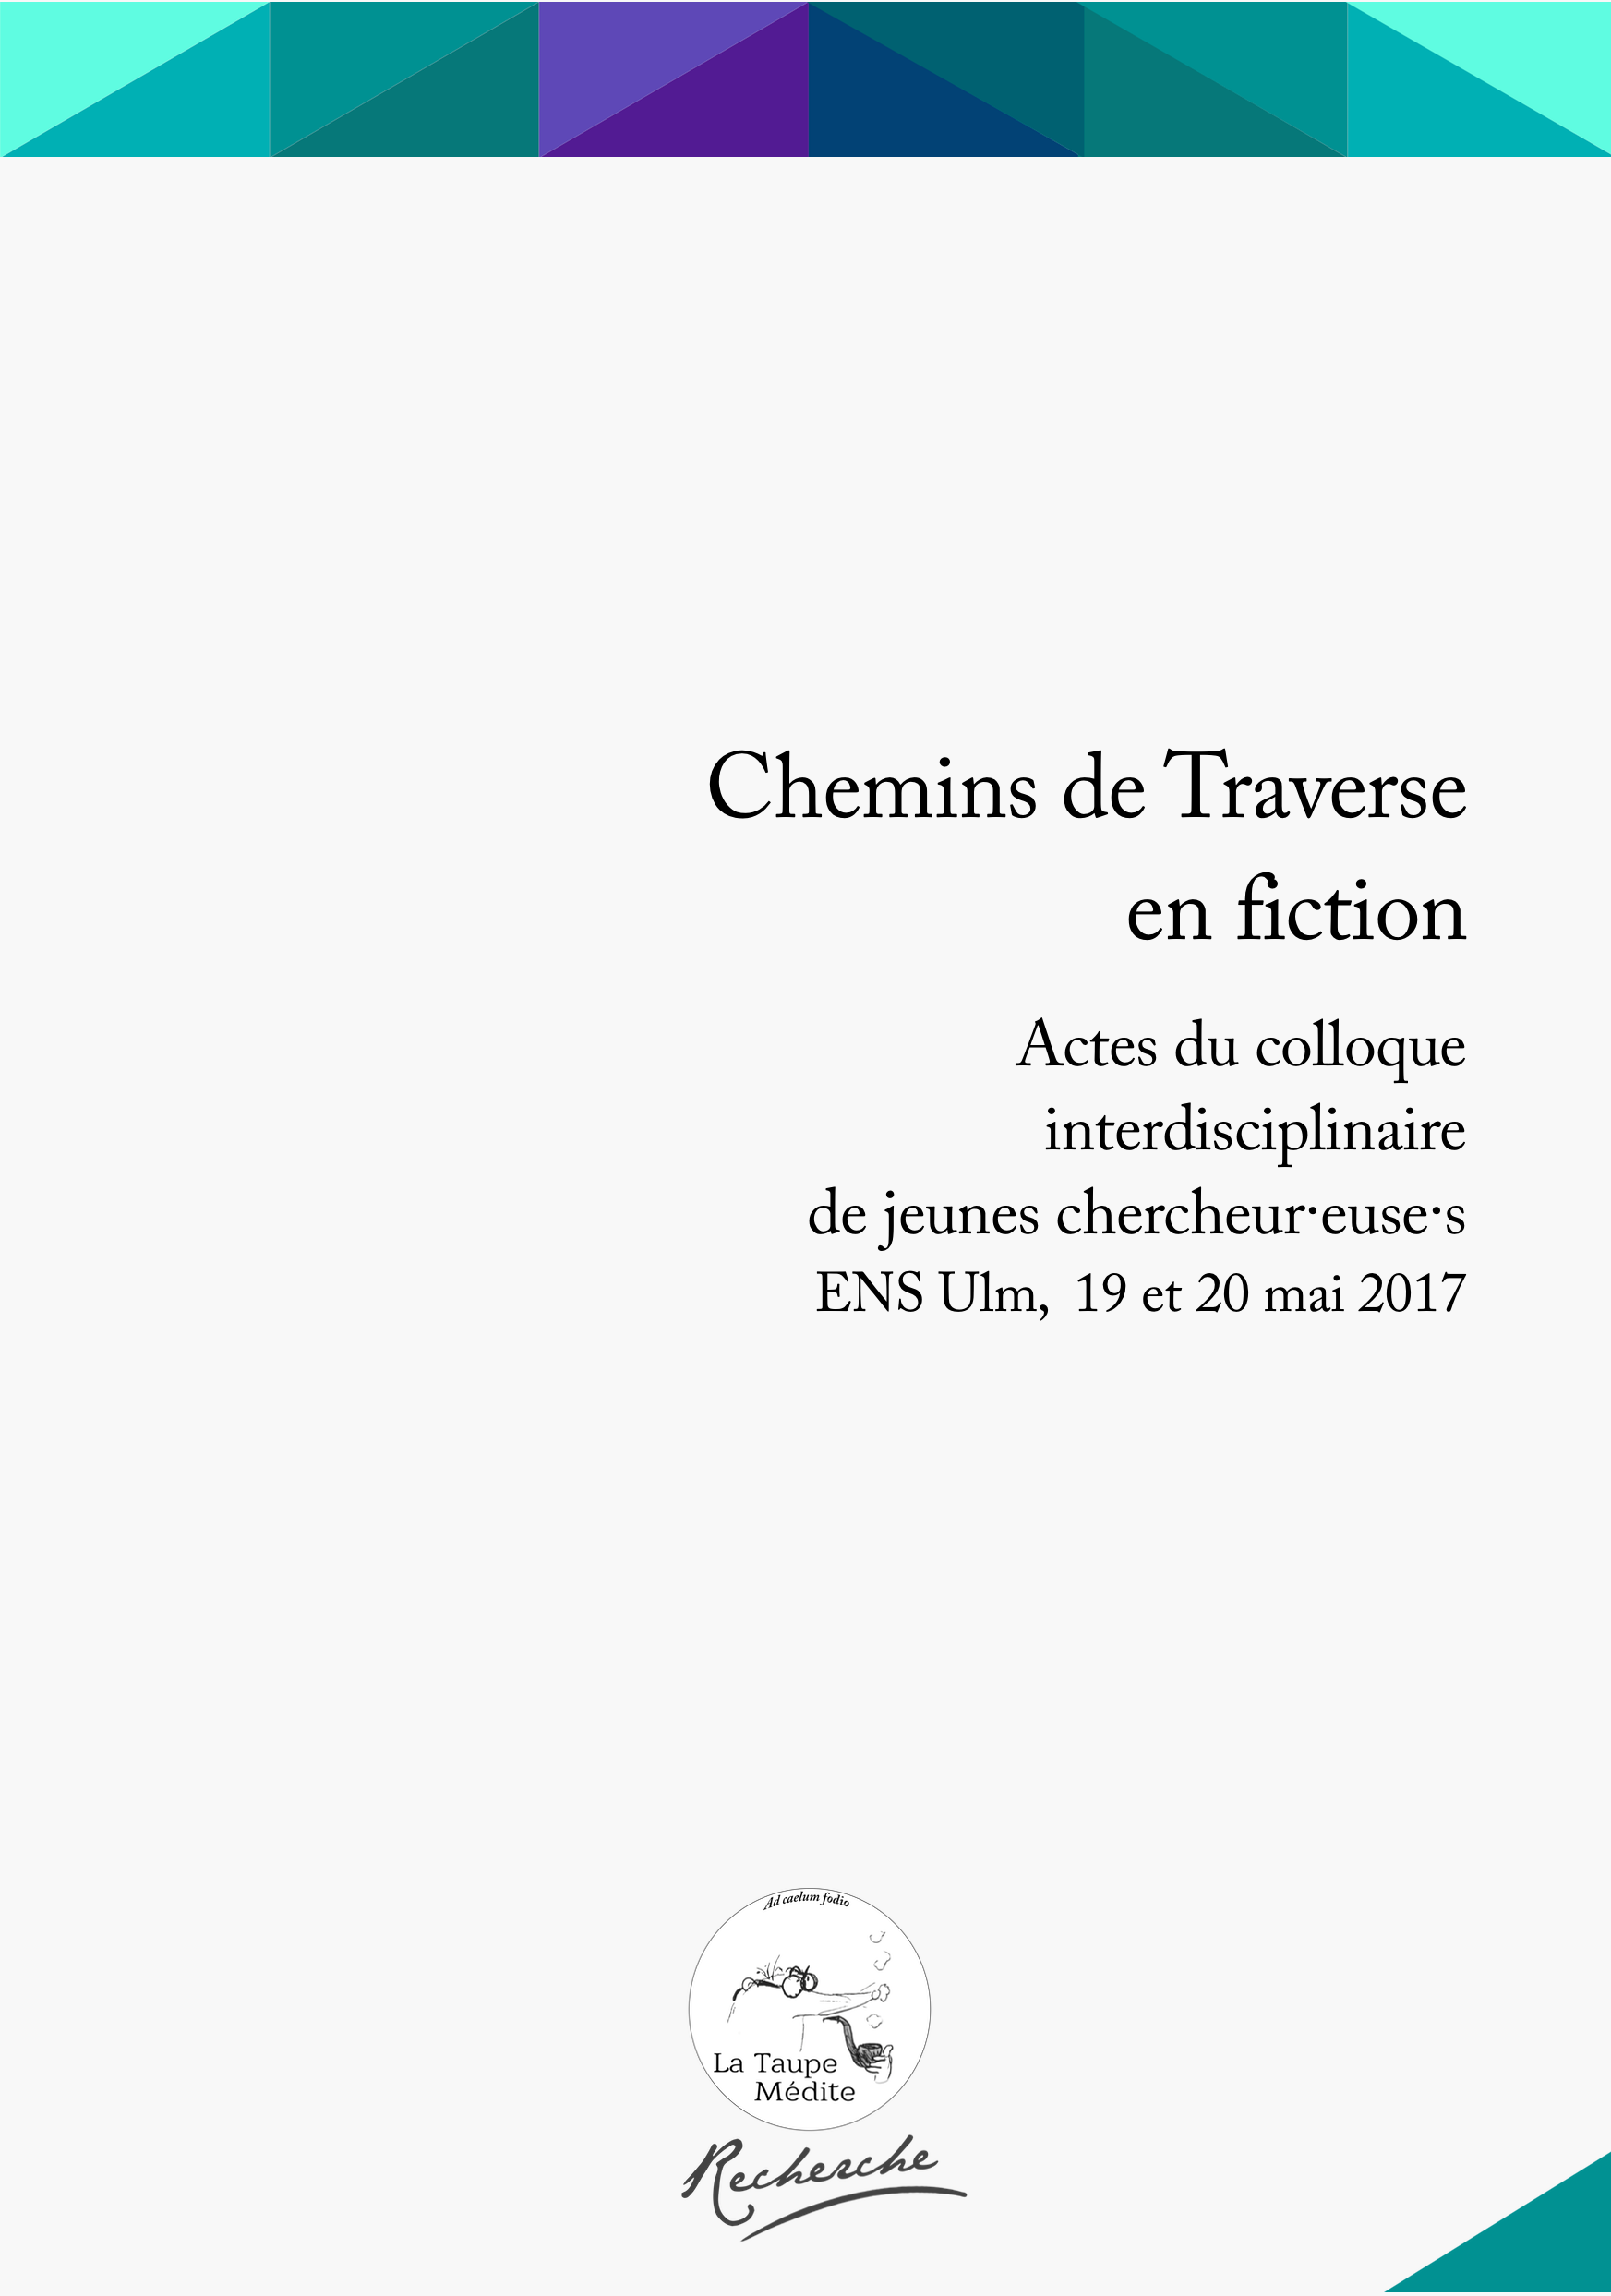 Chemins de Traverse en fiction (collectif)